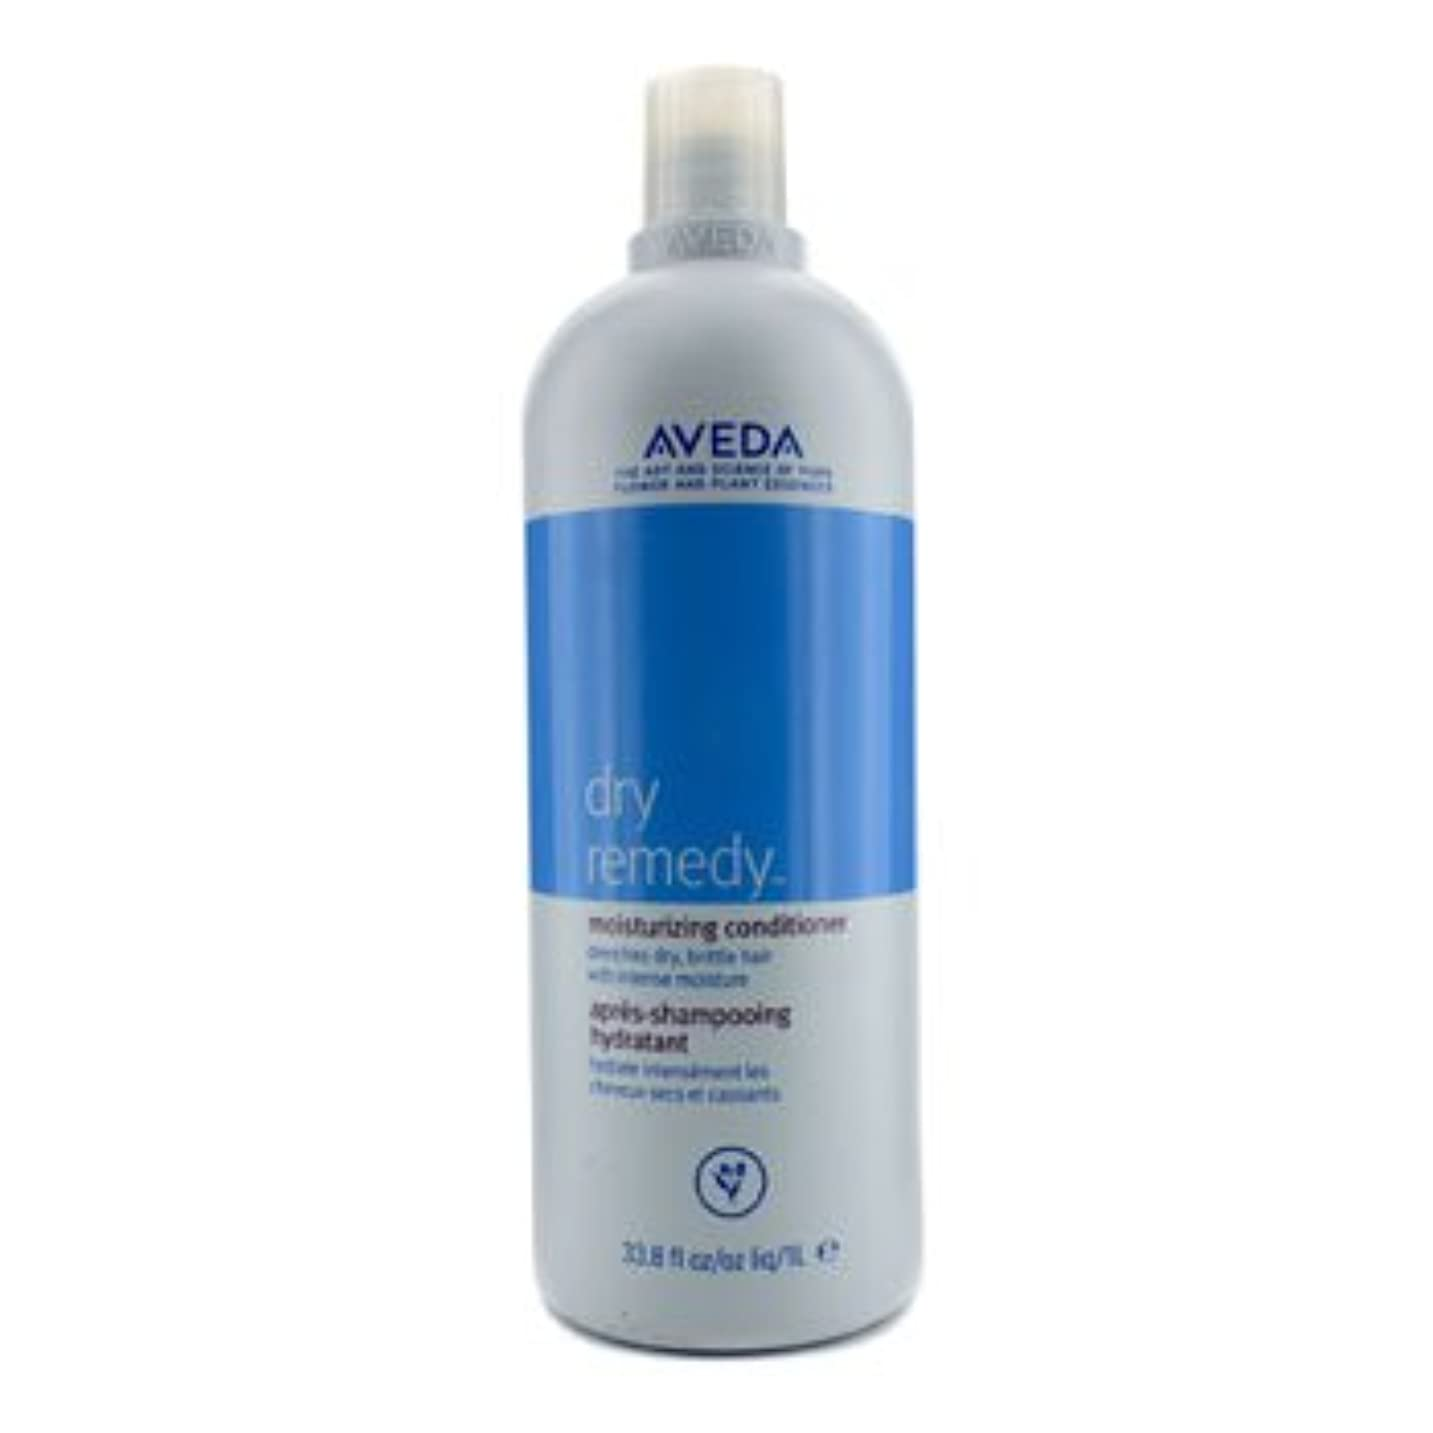 市民権生理道に迷いました[Aveda] Dry Remedy Moisturizing Conditioner - For Drenches Dry Brittle Hair (New Packaging) 1000ml/33.8oz